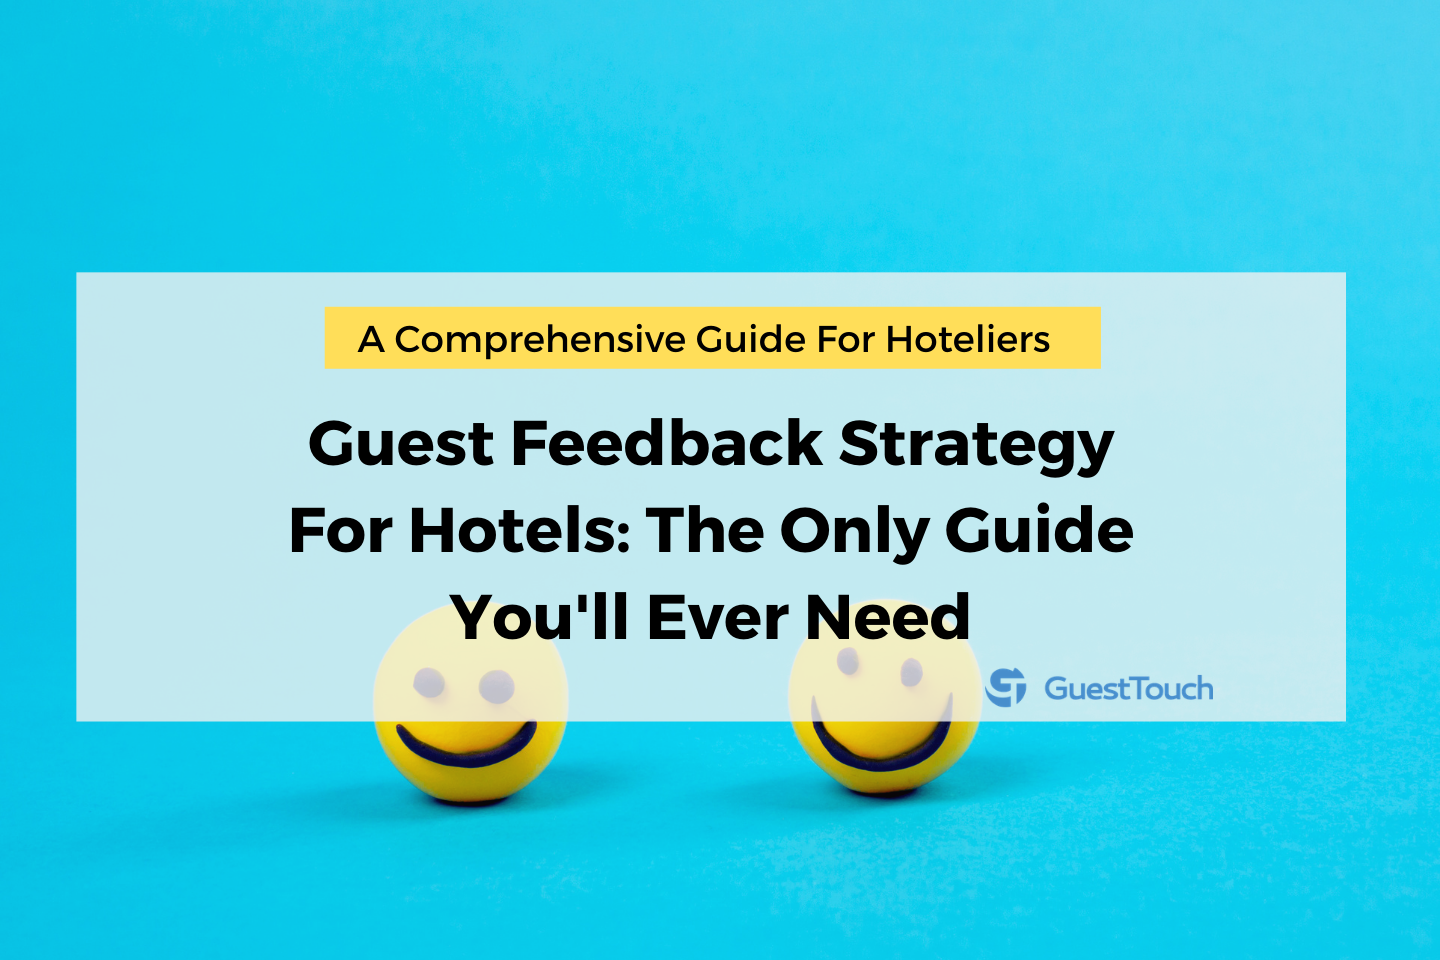 guest feedback strategy for hotels feature image